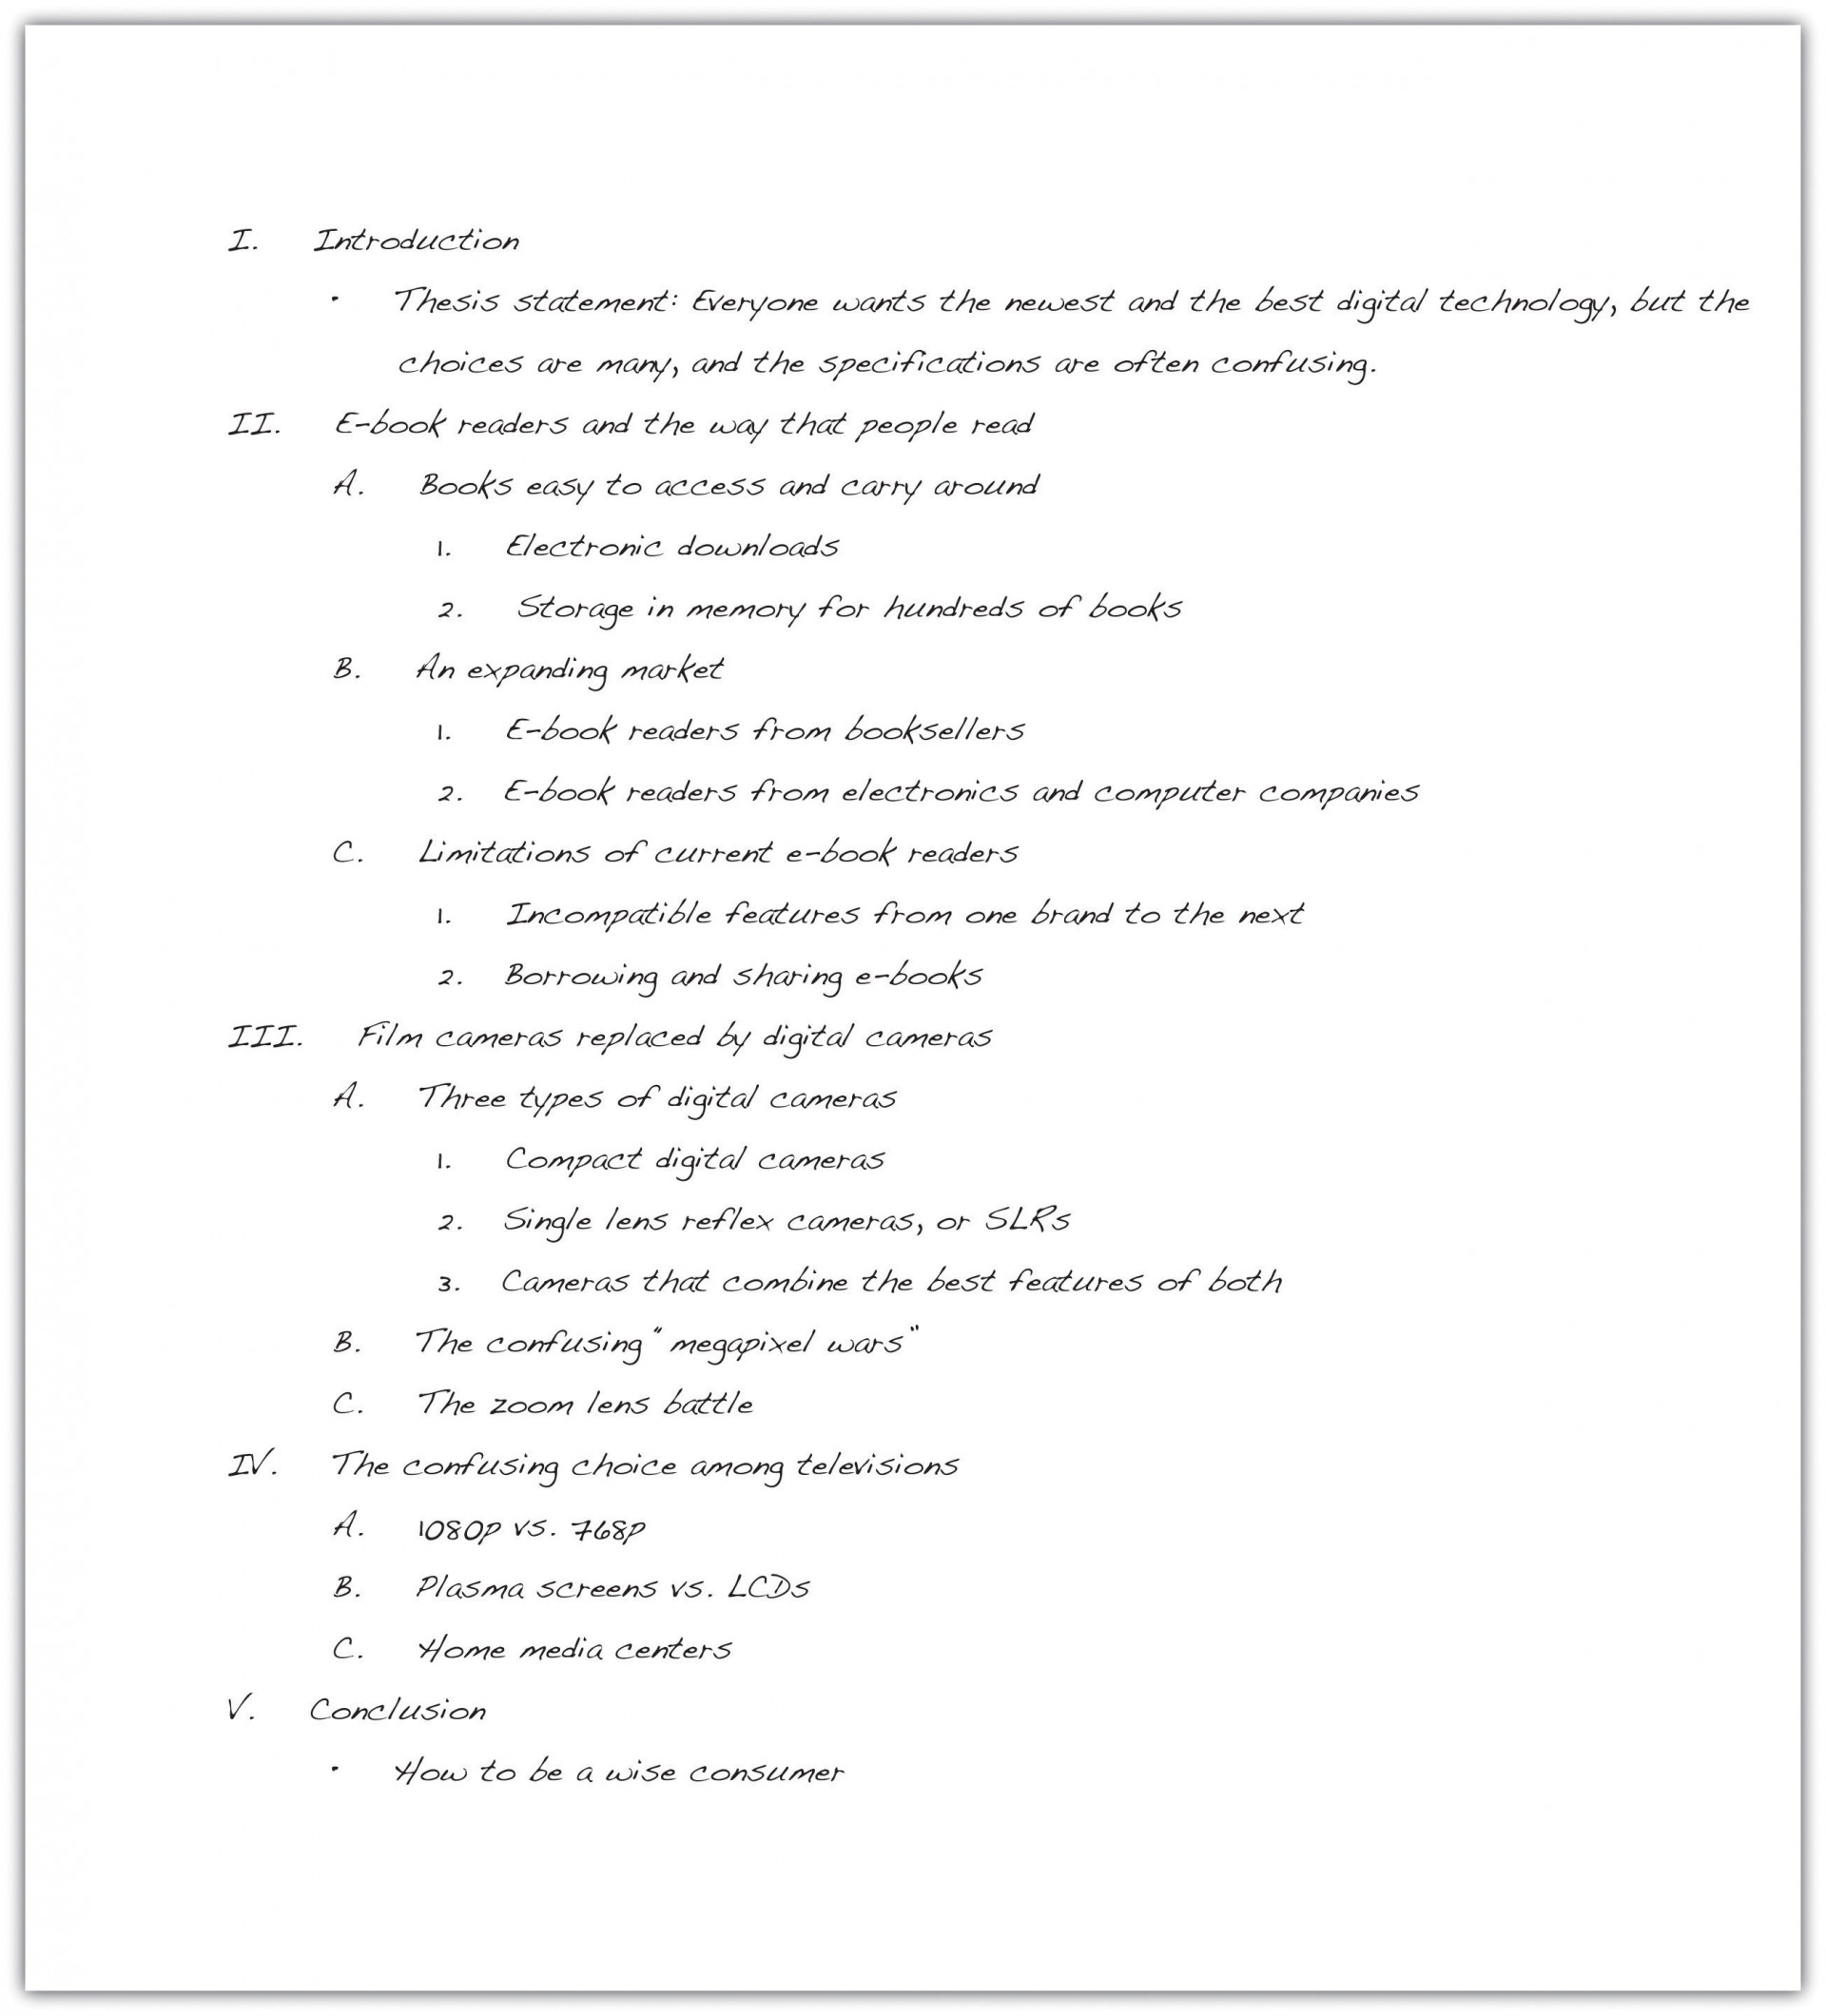 008 Outlining An Essay Best Exercise Outline Of Argumentative Classical Pattern 1920